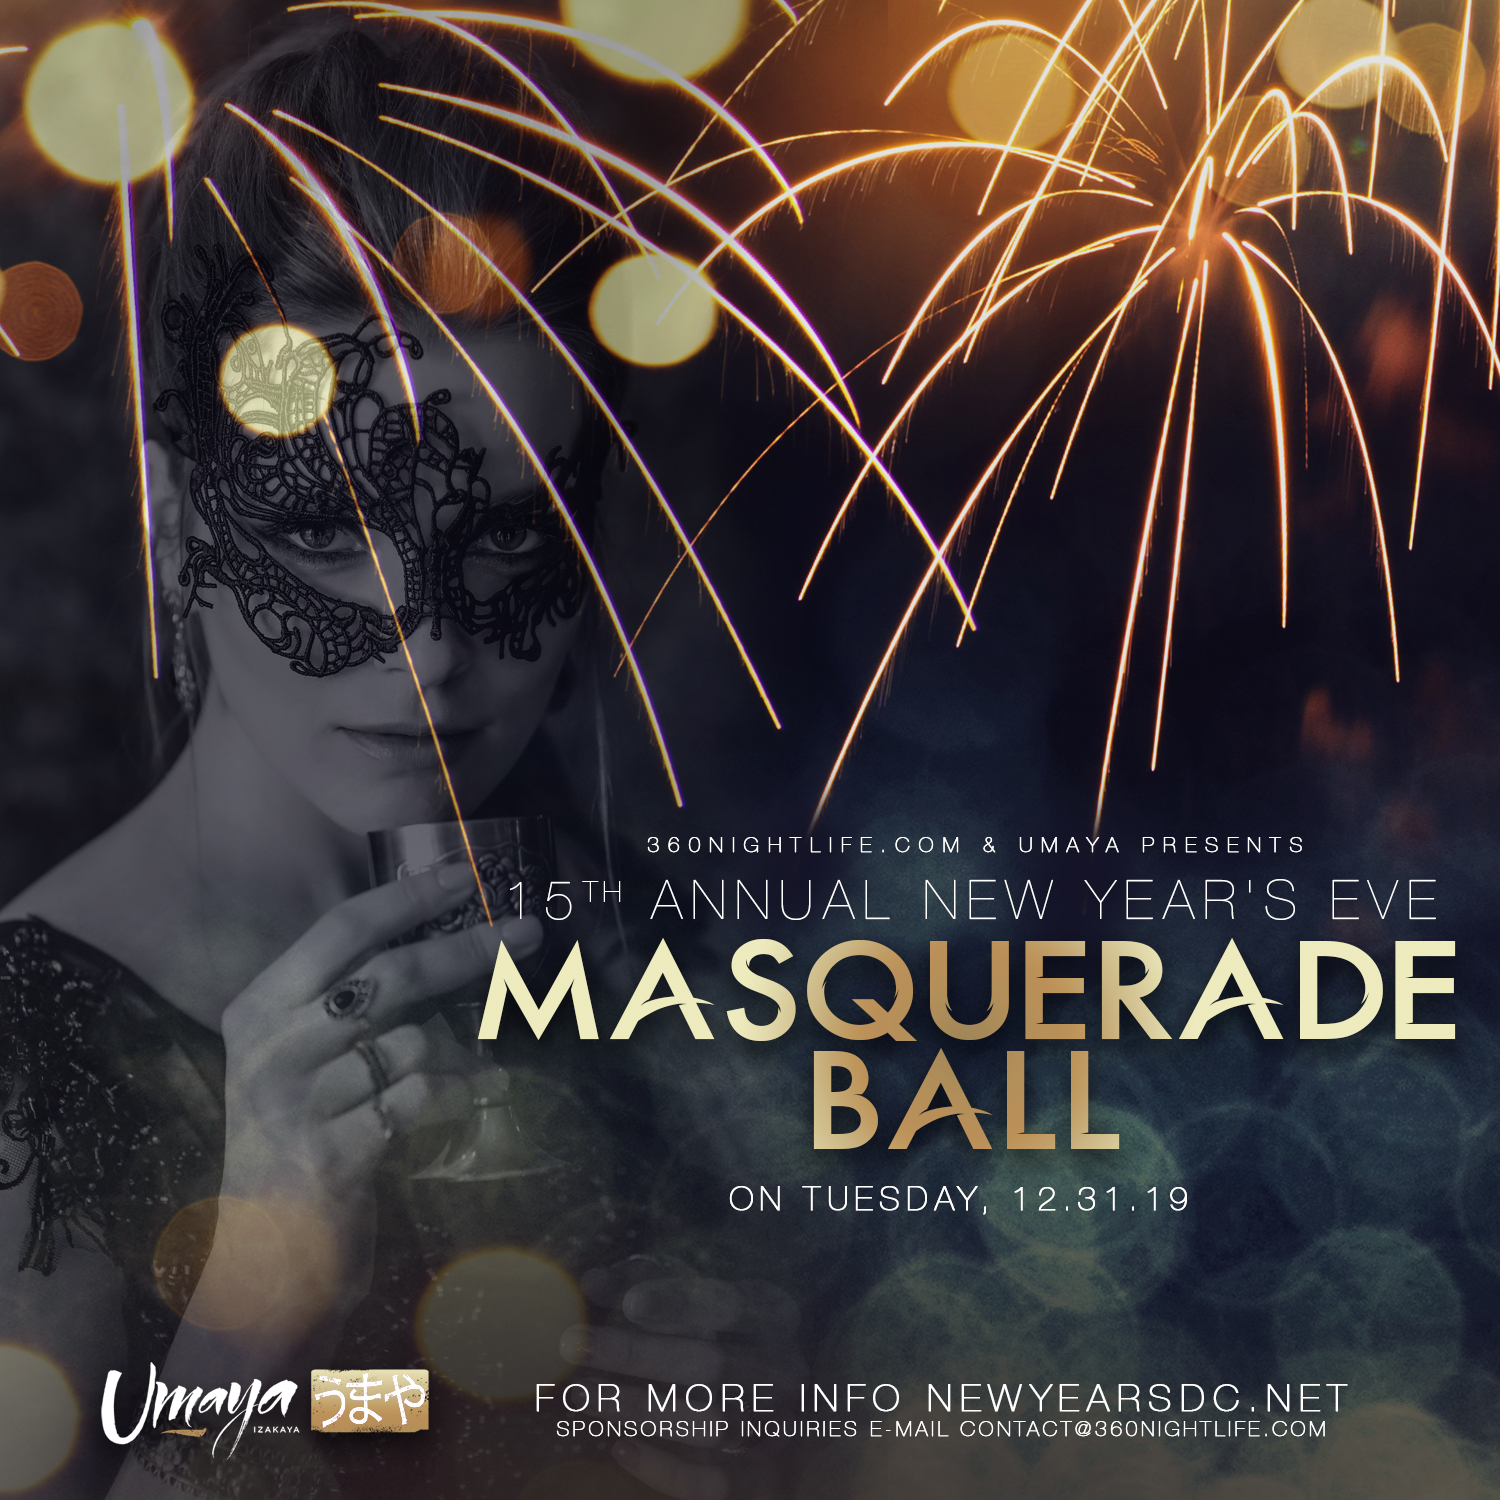 New Year's Eve Masquerade Ball at Umaya Washington, DC 2020